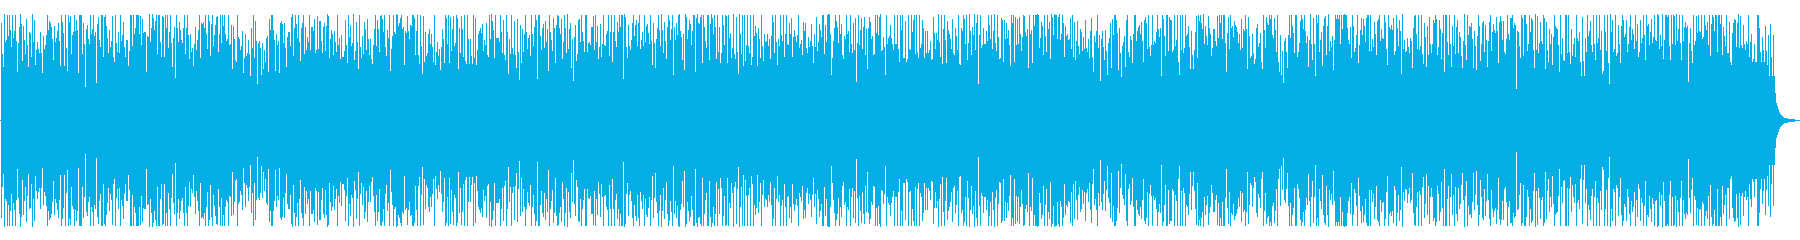 A fast, energetic and hard rock and roll piano band's reproduced waveform